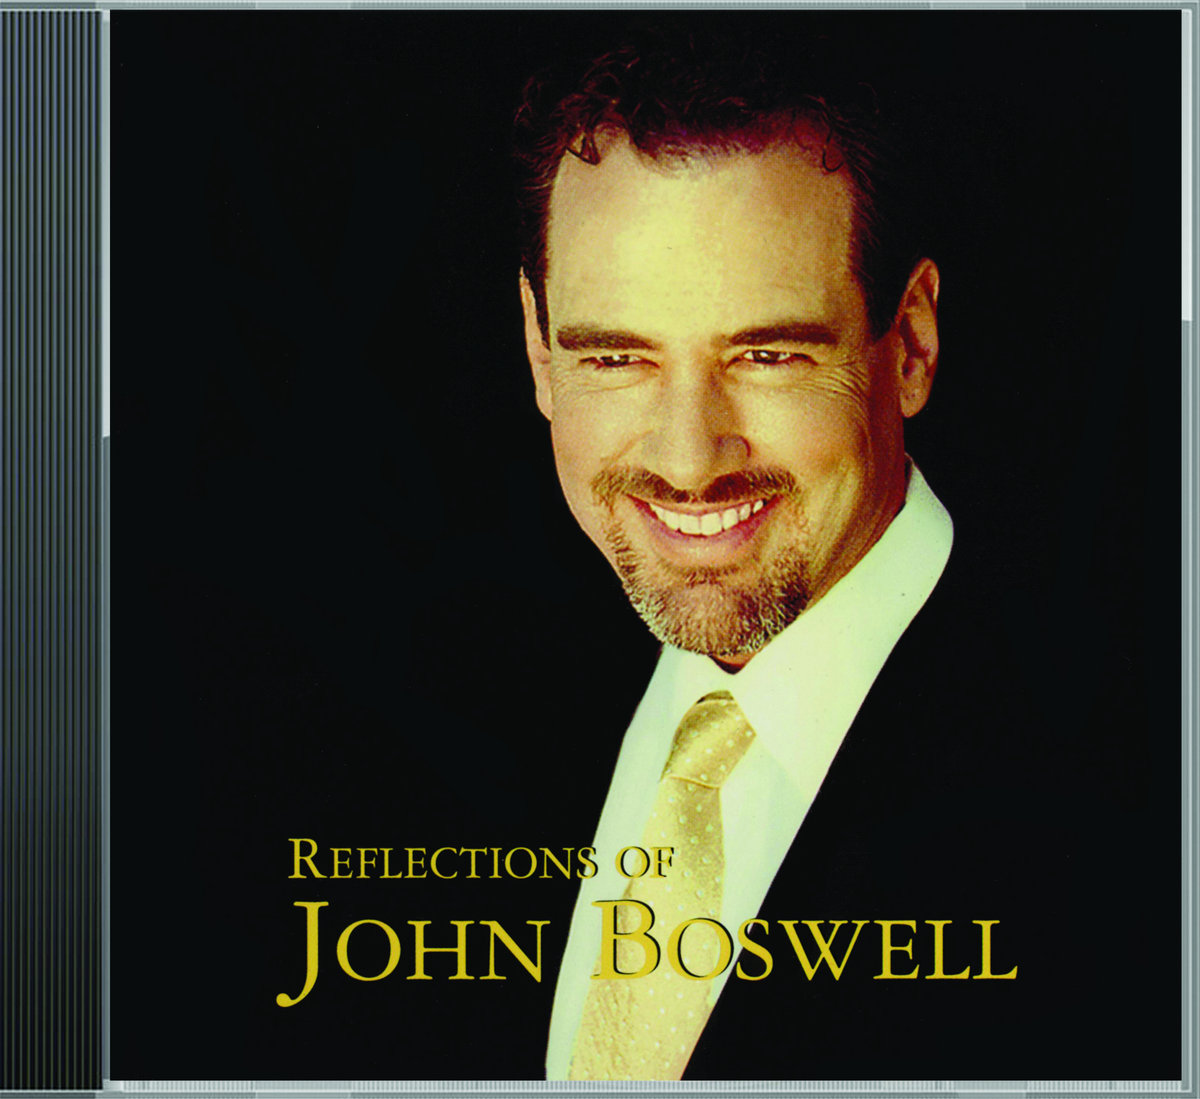 Includes Unlimited Streaming Of Reflections Of John Boswell Via The Free Bandcamp App Plus High Quality Download In Mp3 Flac And More